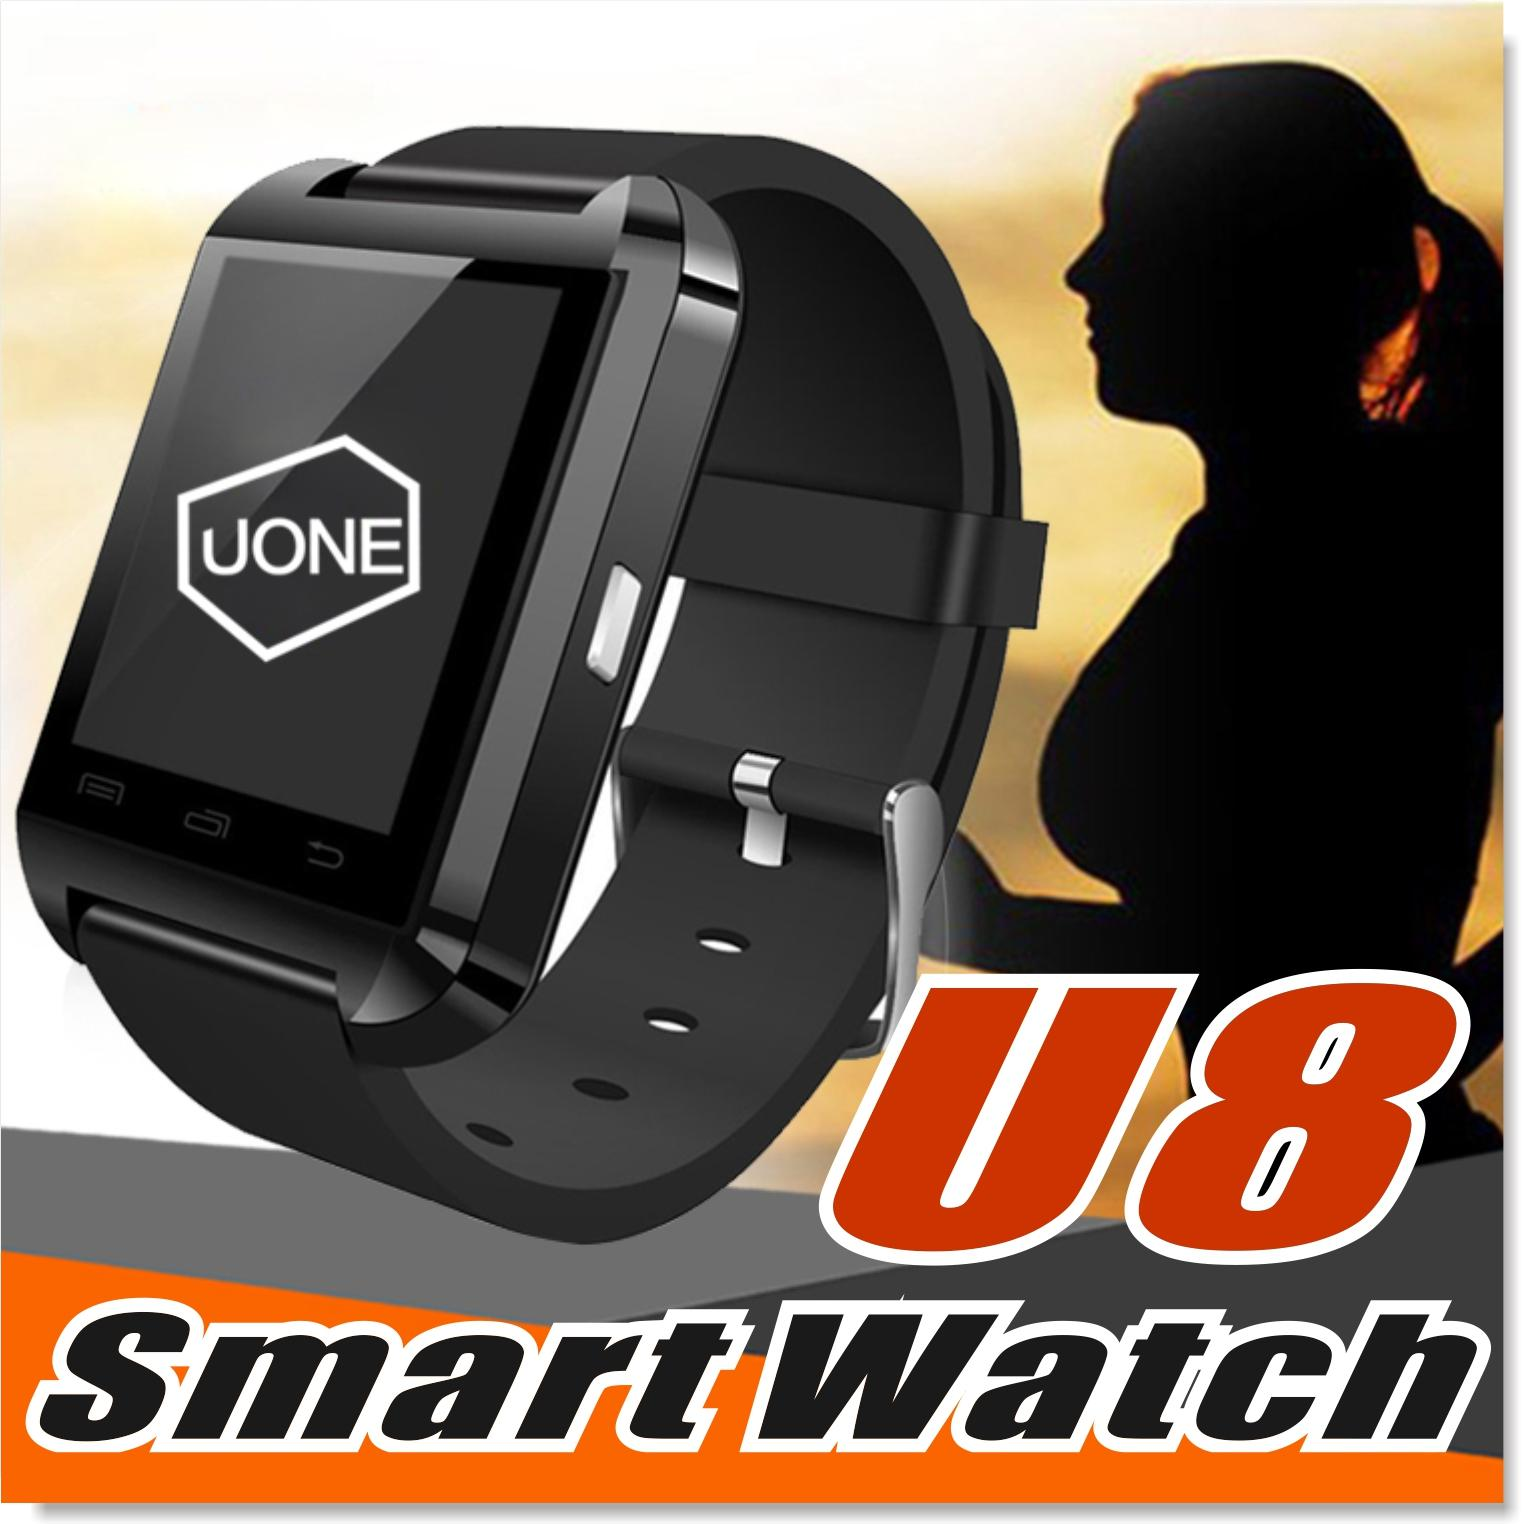 U8 Smart Watch Smartwatch Wrist Watches With Altimeter And Motor For Iphone 7 6 6s Plus Samsung S8 Pluls S7 Edge Android Apple Cell Phone Smart Watch